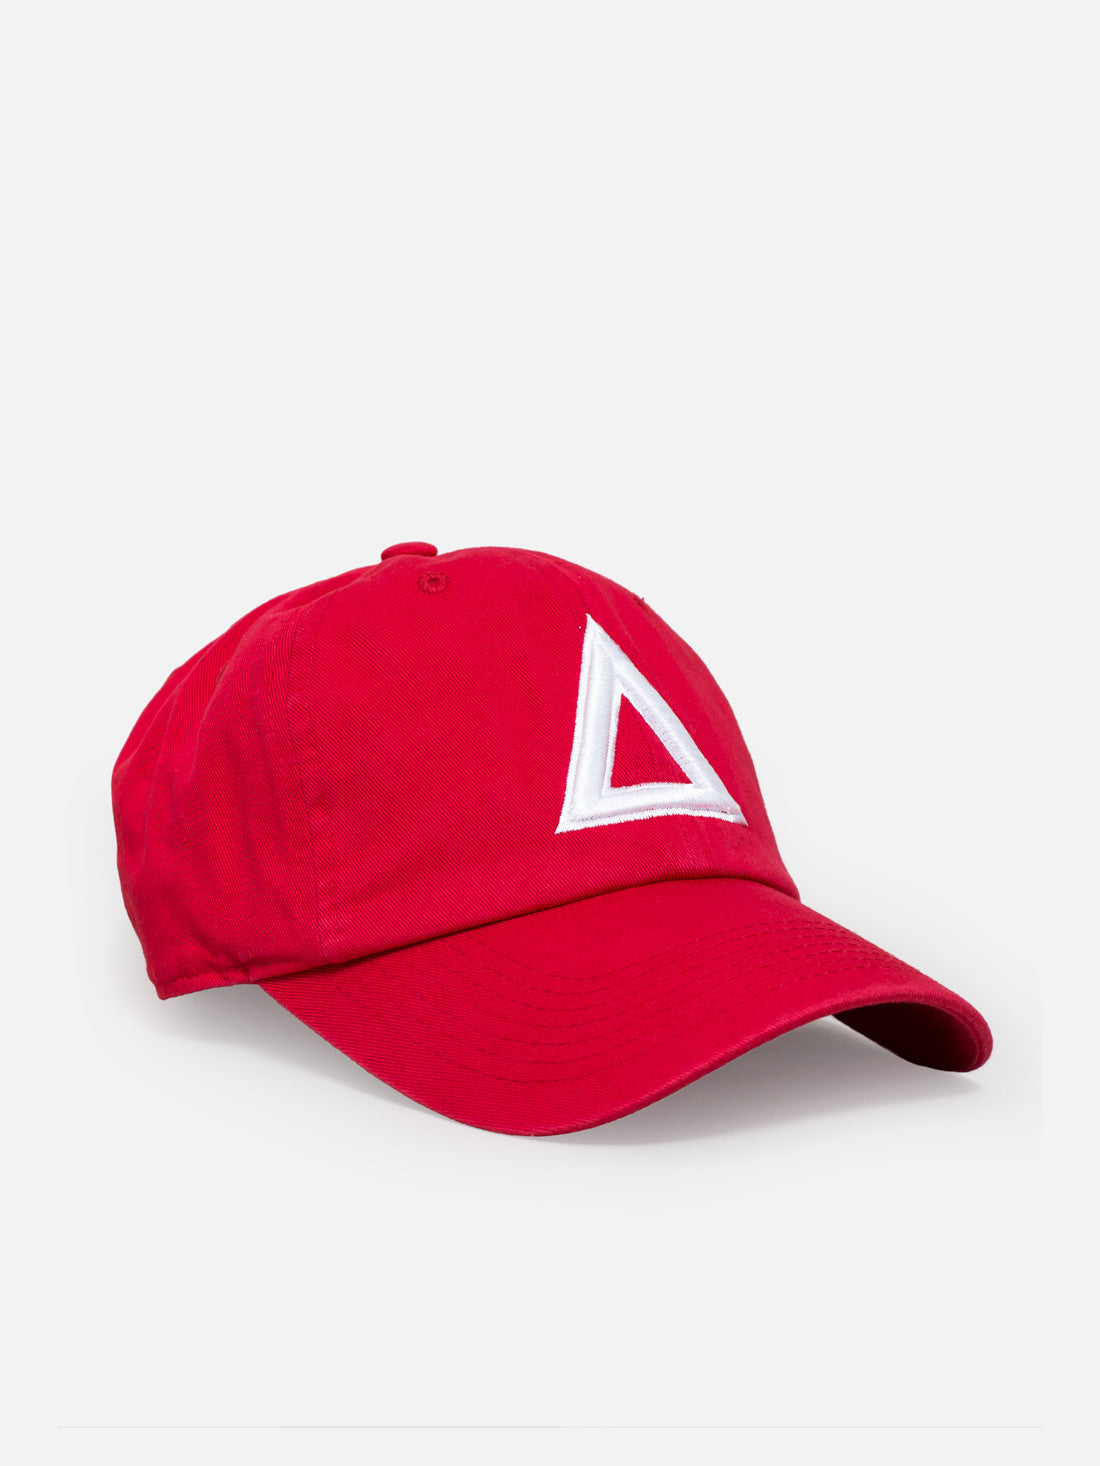 Dad hat red - white tri